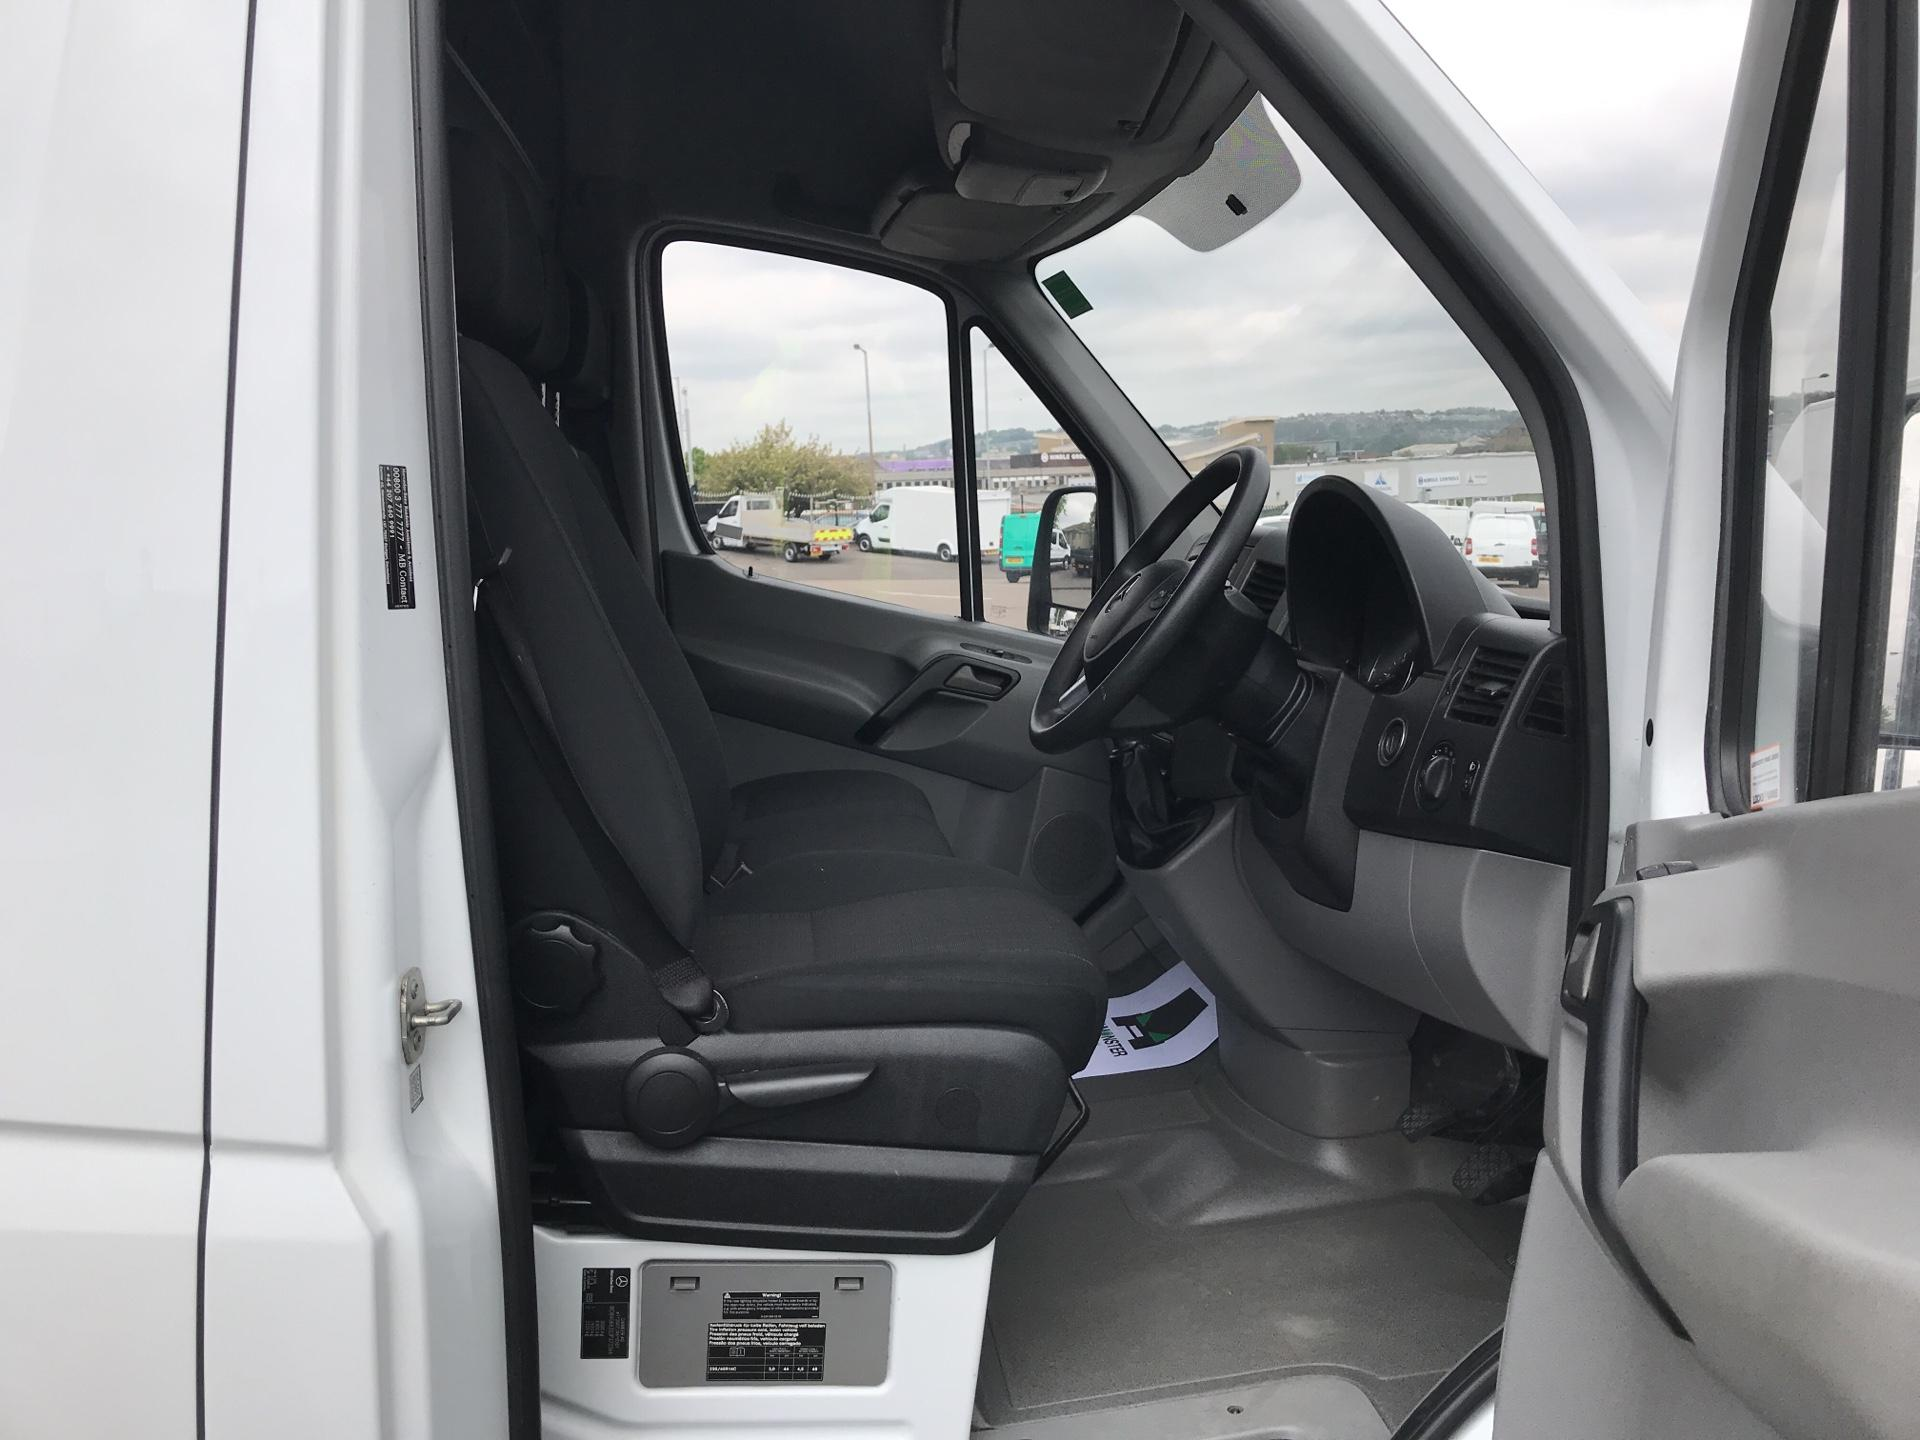 2017 Mercedes-Benz Sprinter 3.5T High Roof Van MWB (KN17BVK) Thumbnail 9